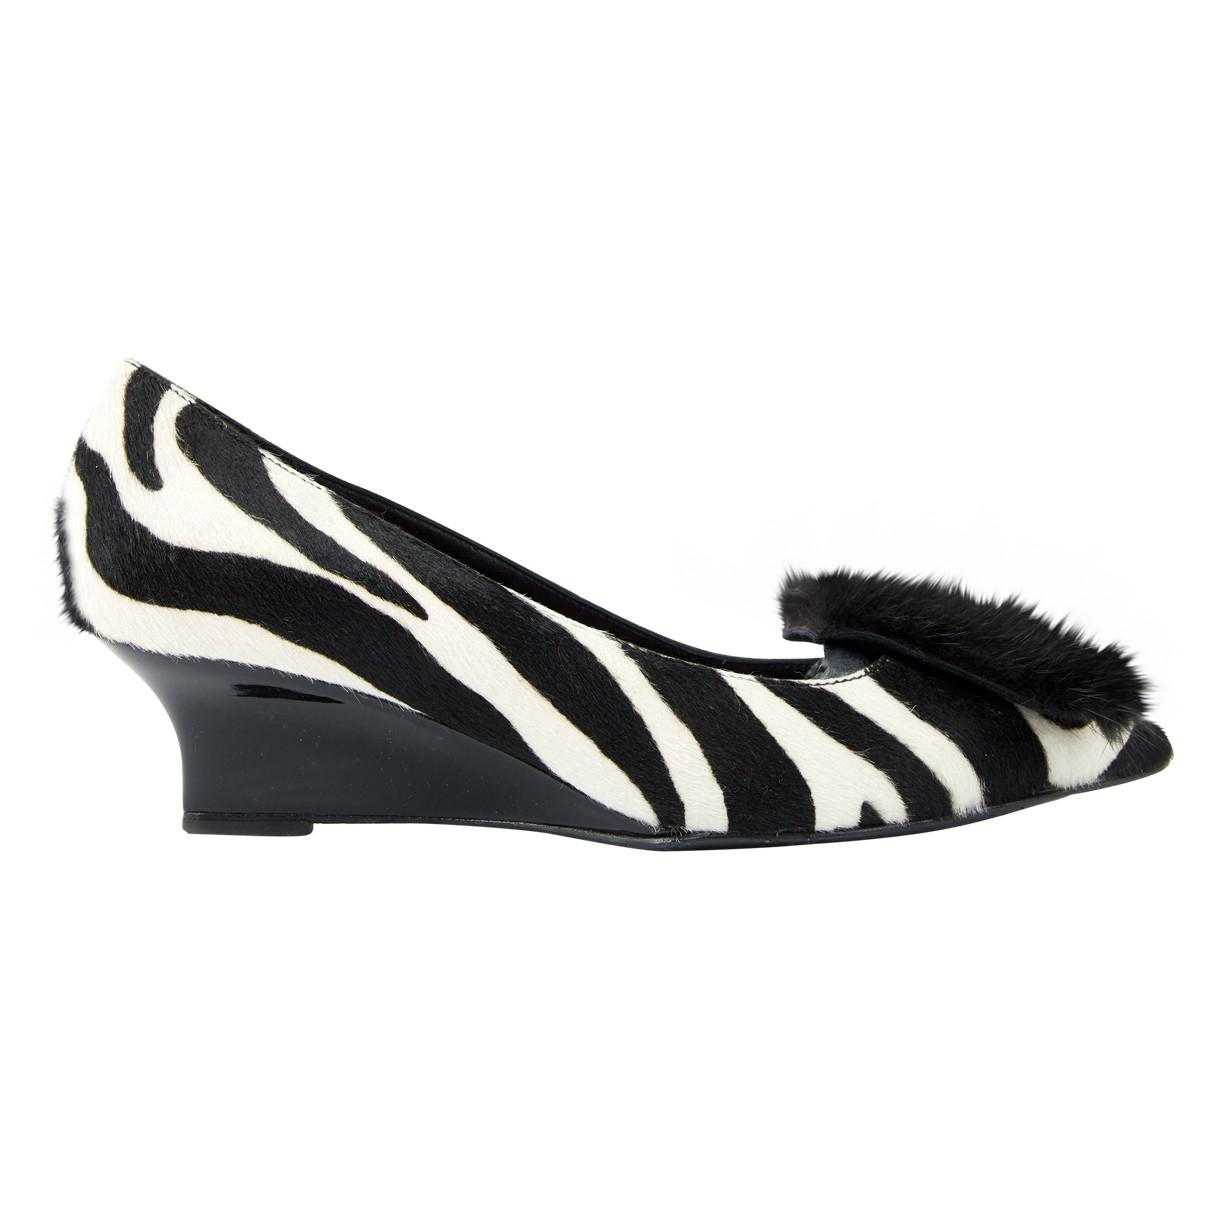 Best Seller Cheap Price Finishline For Sale Burberry Pony-style Calfskin Heels tIMVqB